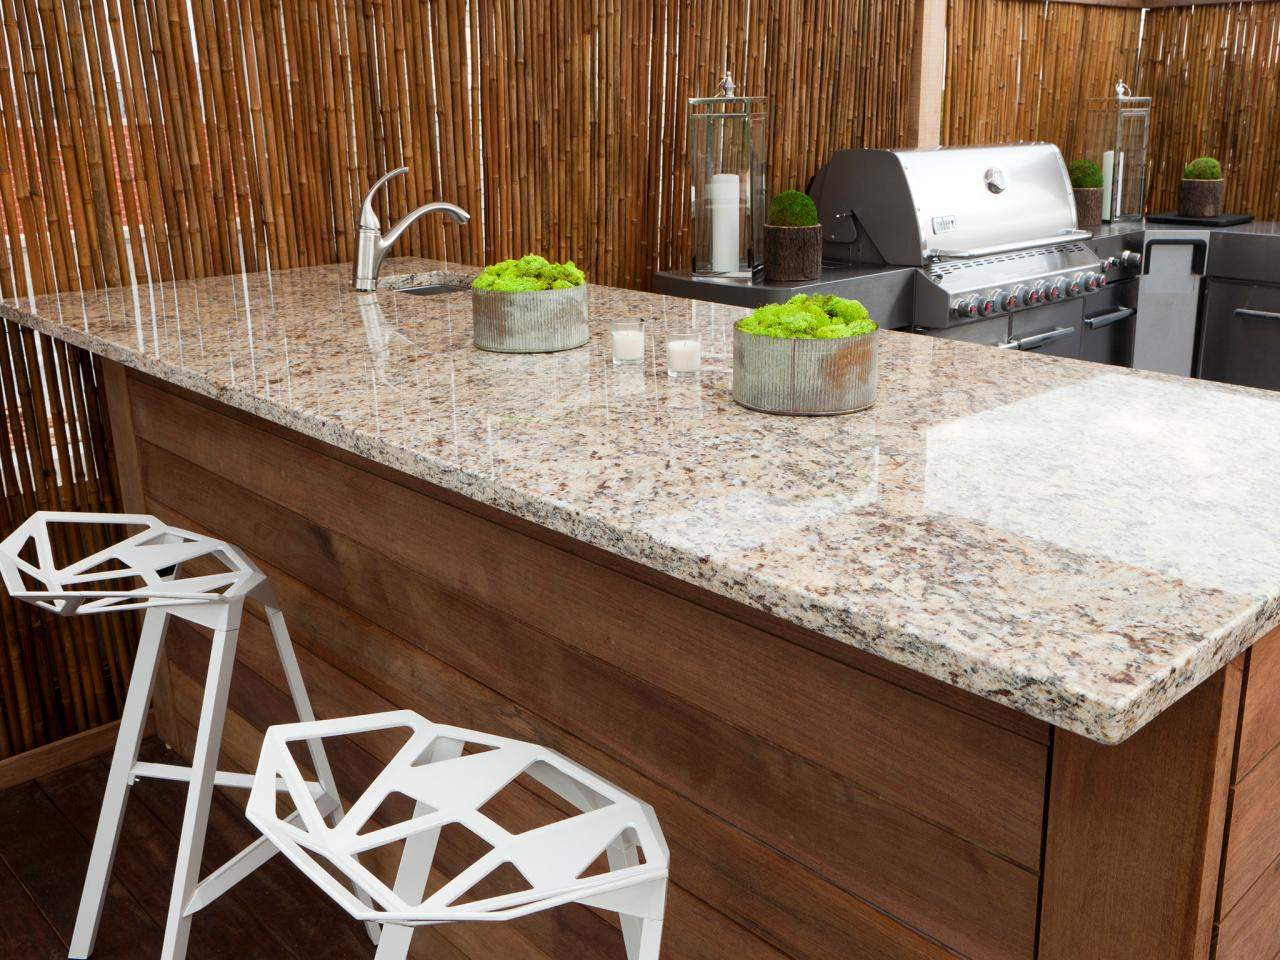 Granite Tops For Kitchen : Granite Kitchen Countertops: Pictures & Ideas From HGTV HGTV